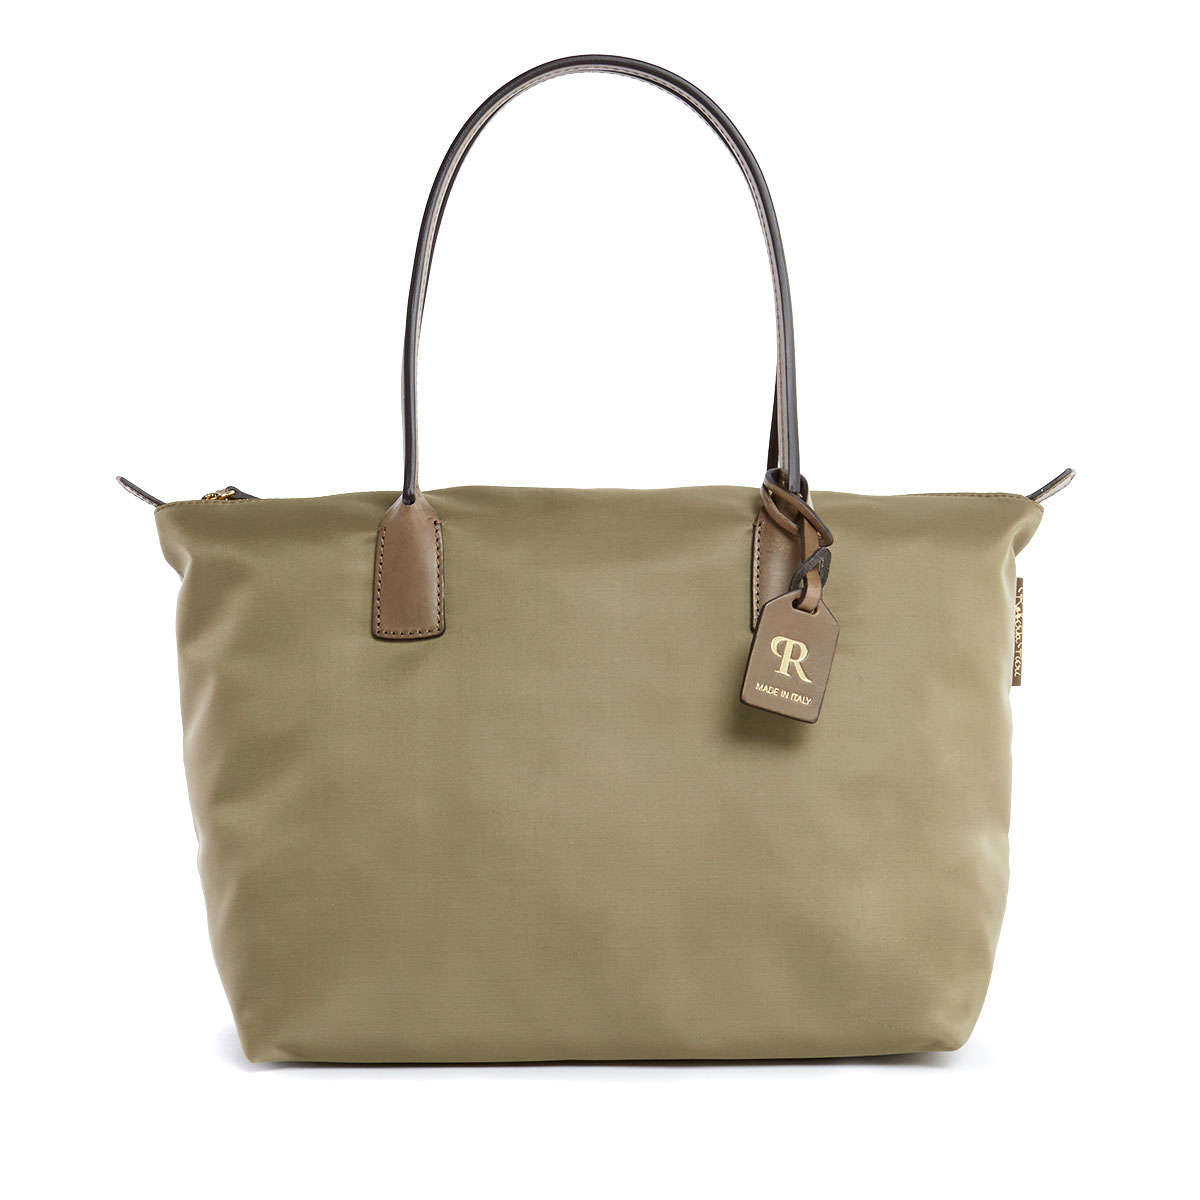 Robertina Monochrome Taupe - Large Tote